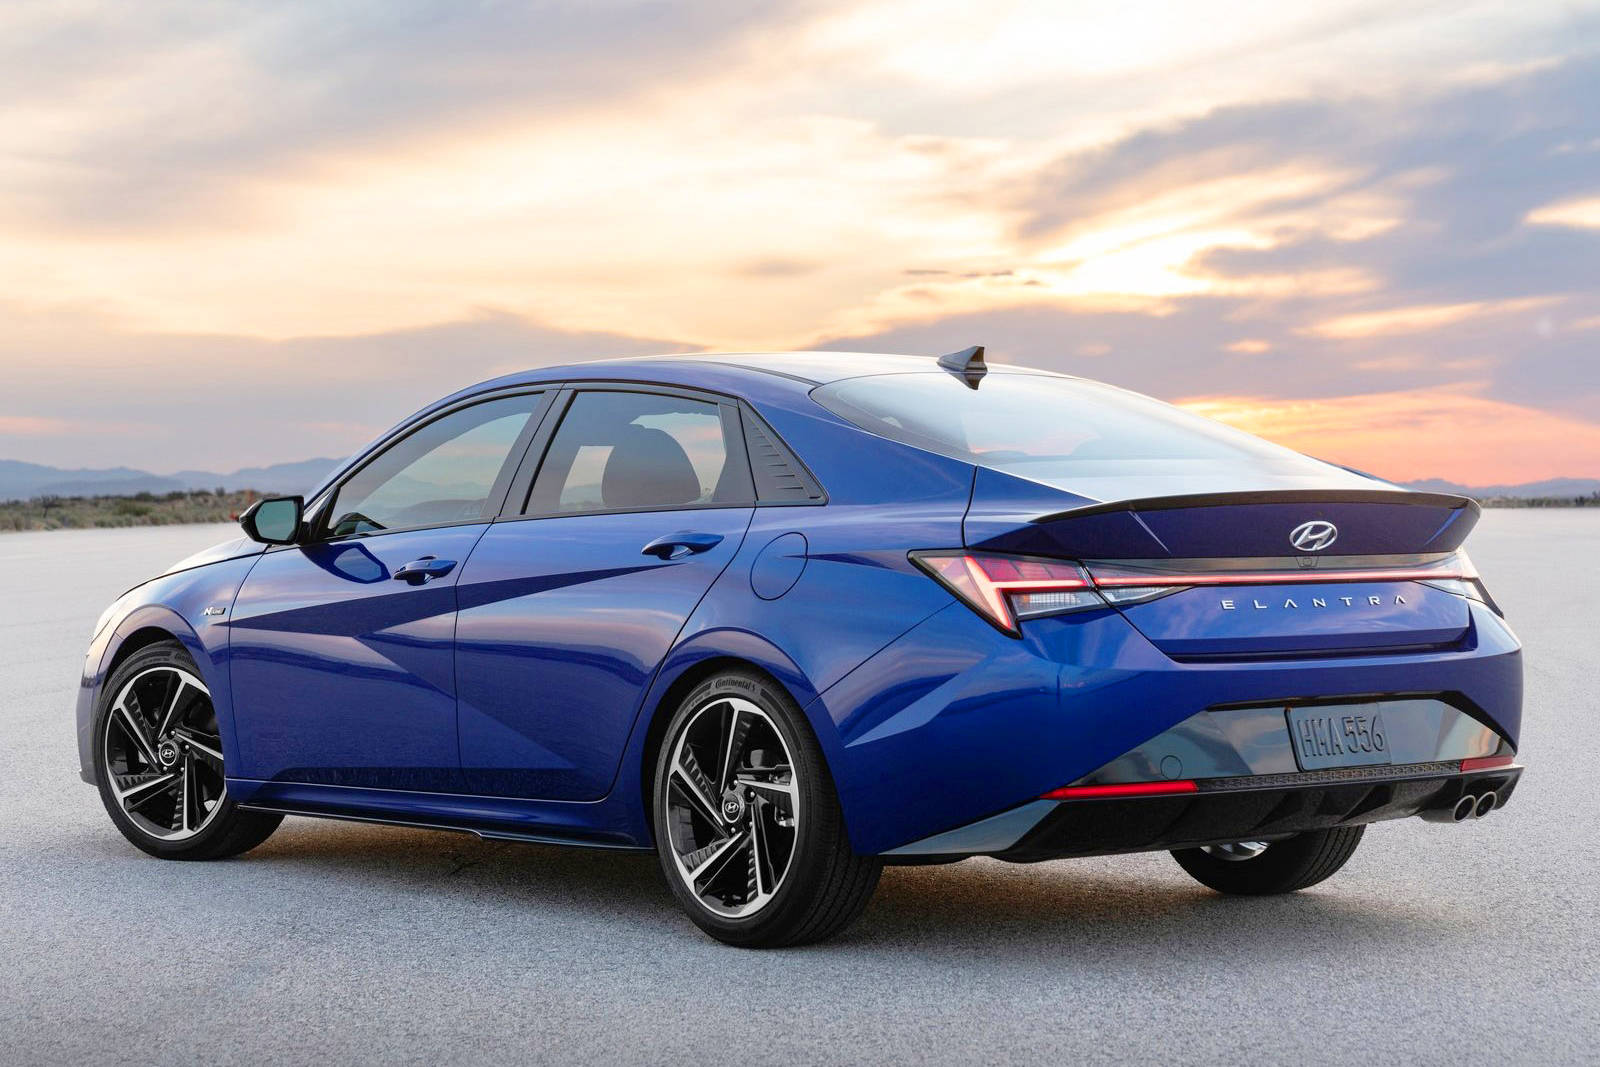 The 2021 Hyundai Elantra features attractive side creases extending along the door and rear-fender panels that blend into a knife-edged trunk lid.